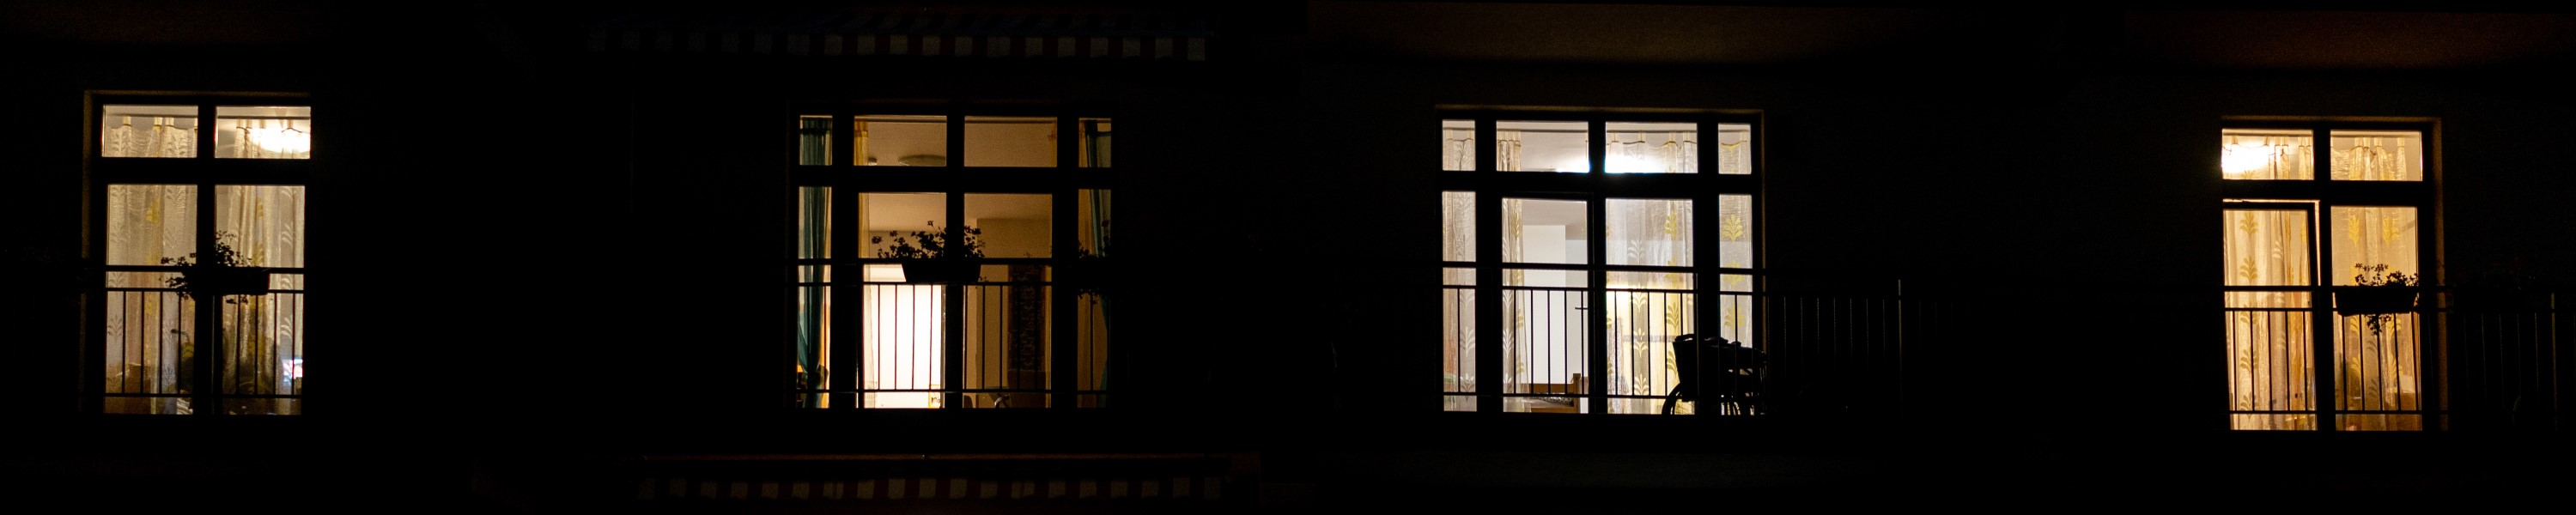 Illuminated building at night with people inside